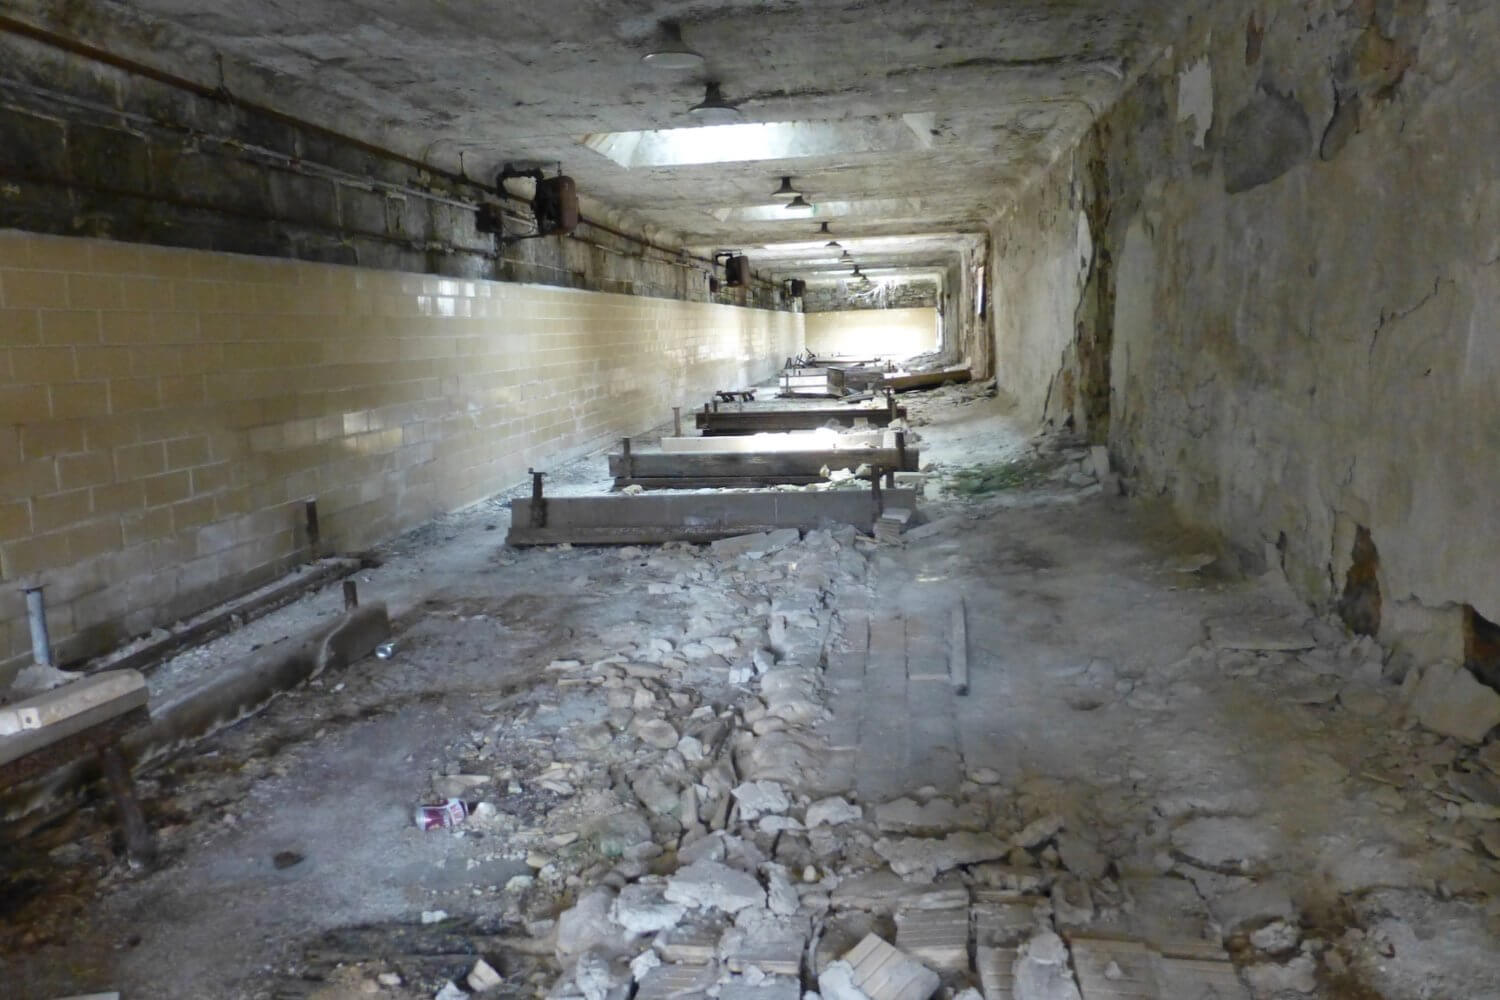 eastern state penitentiary mess all in ruins